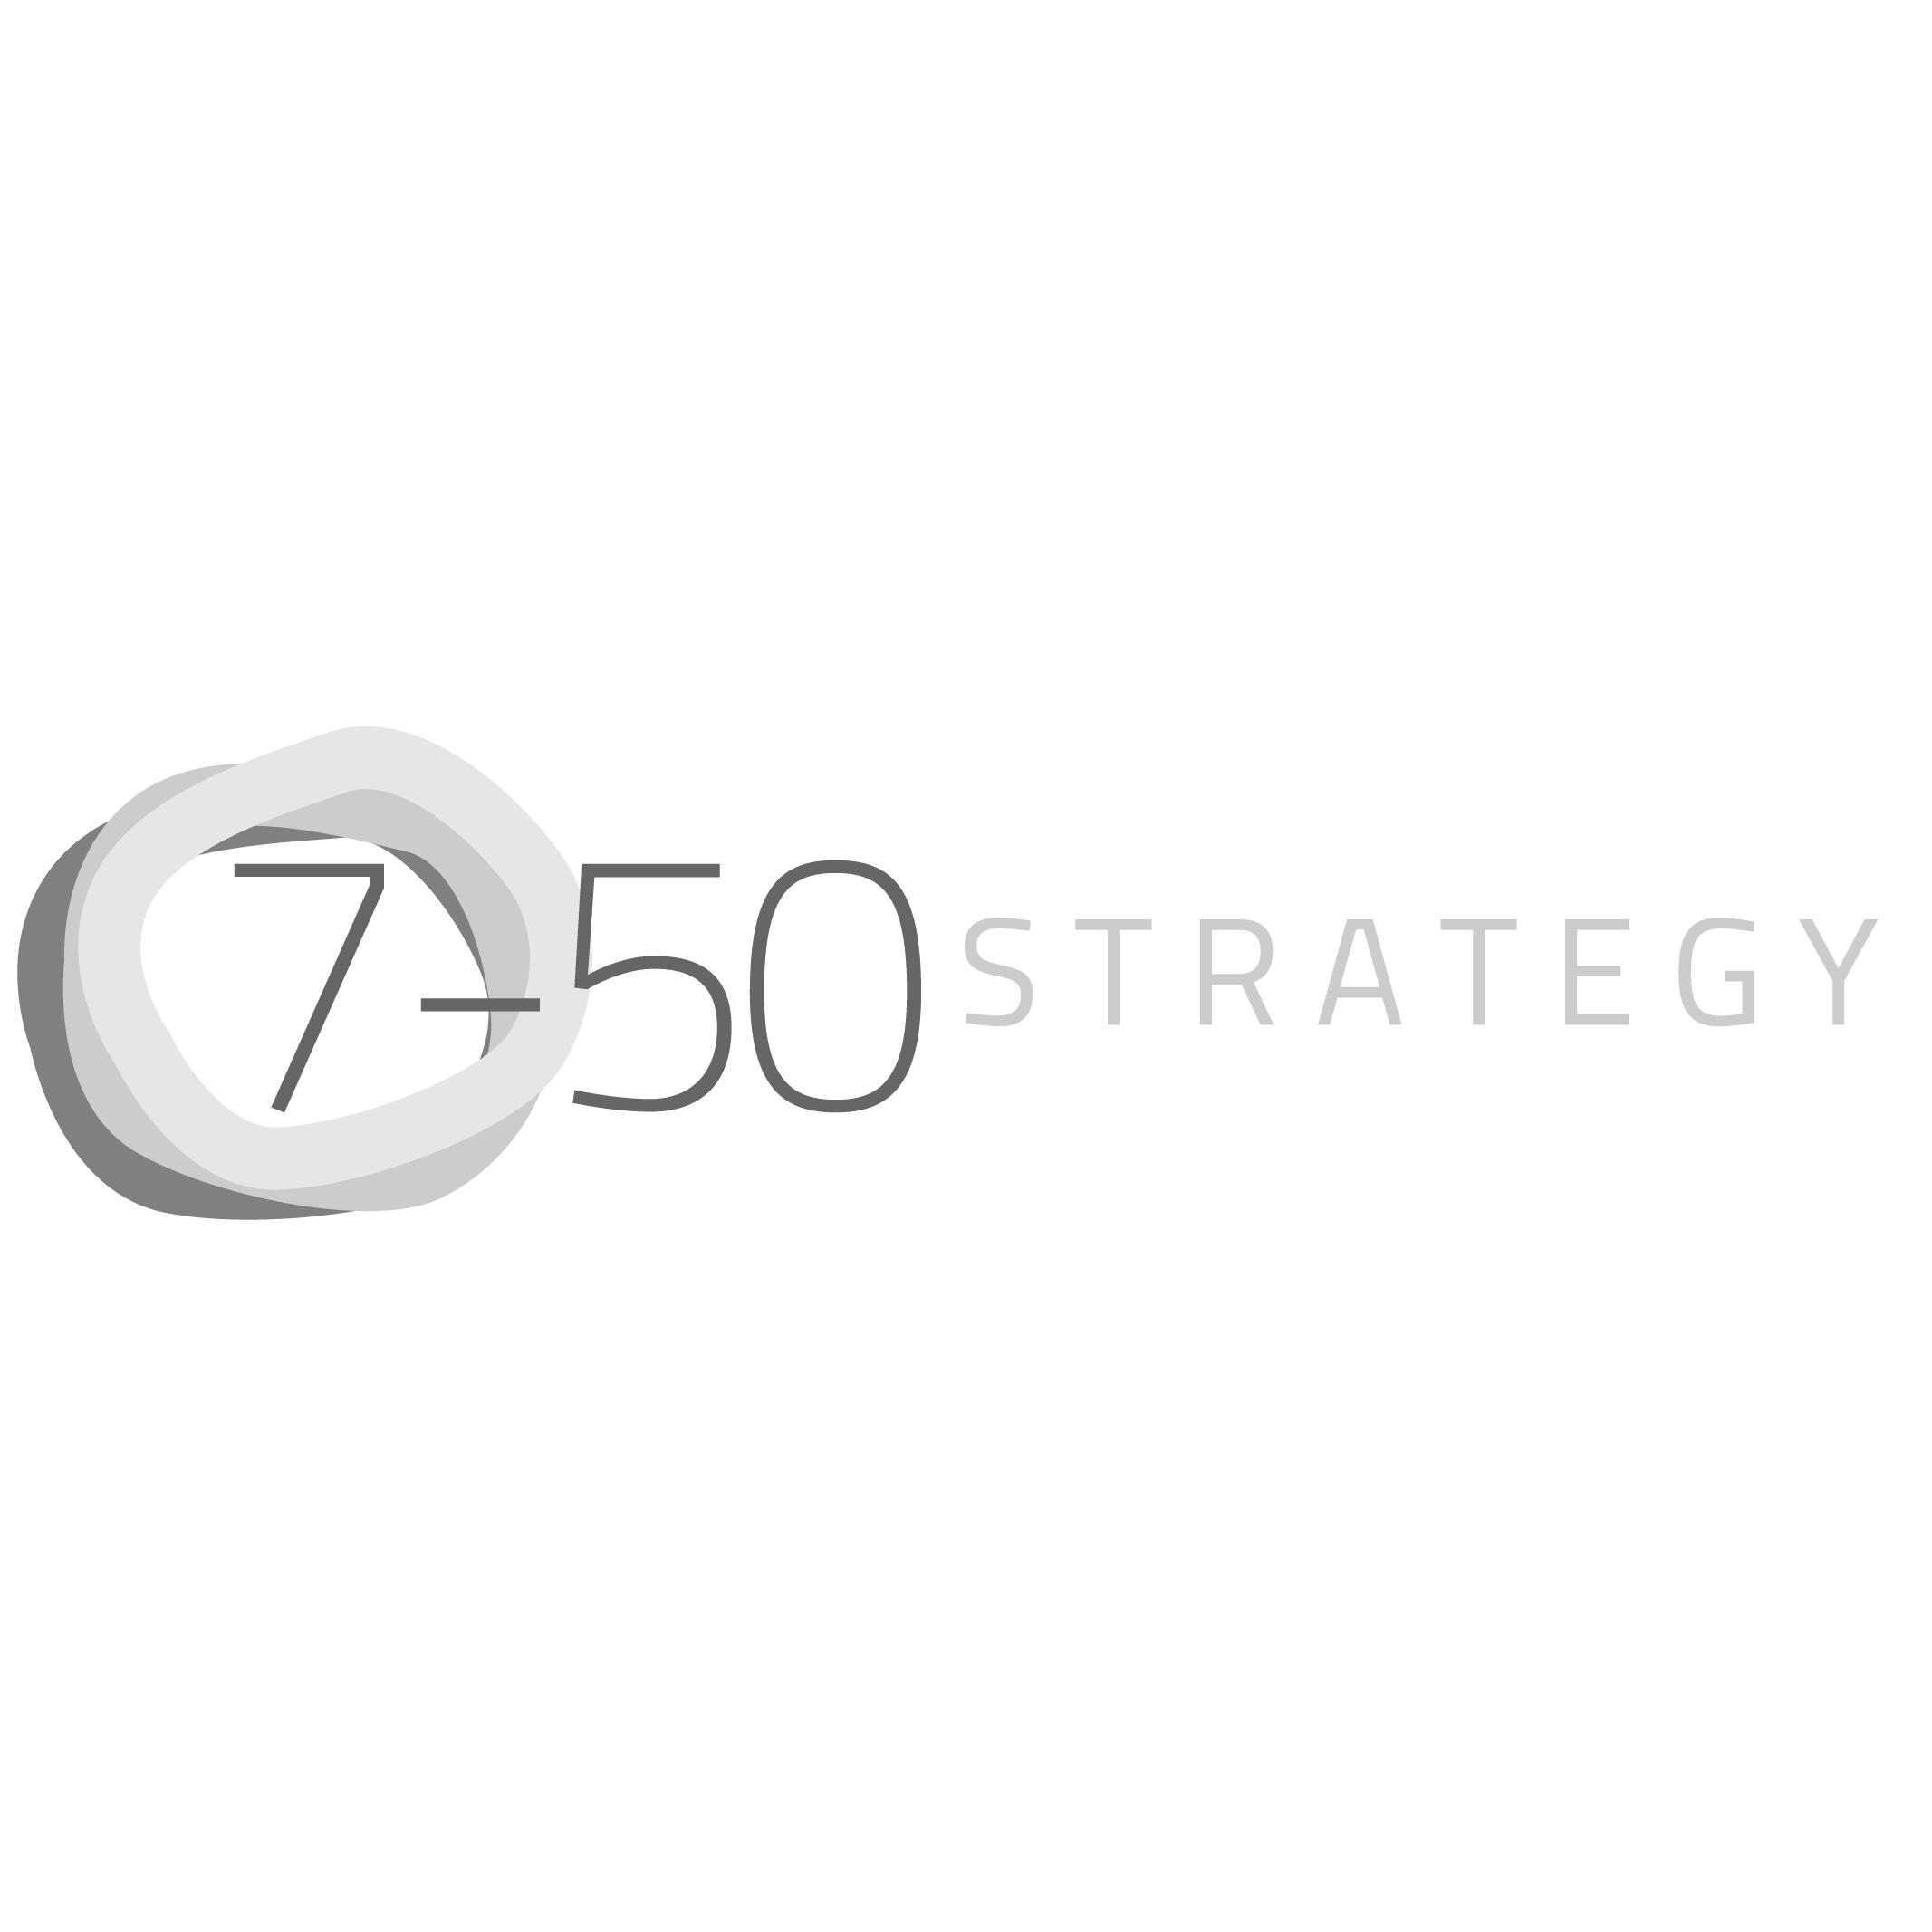 7-50 Strategy